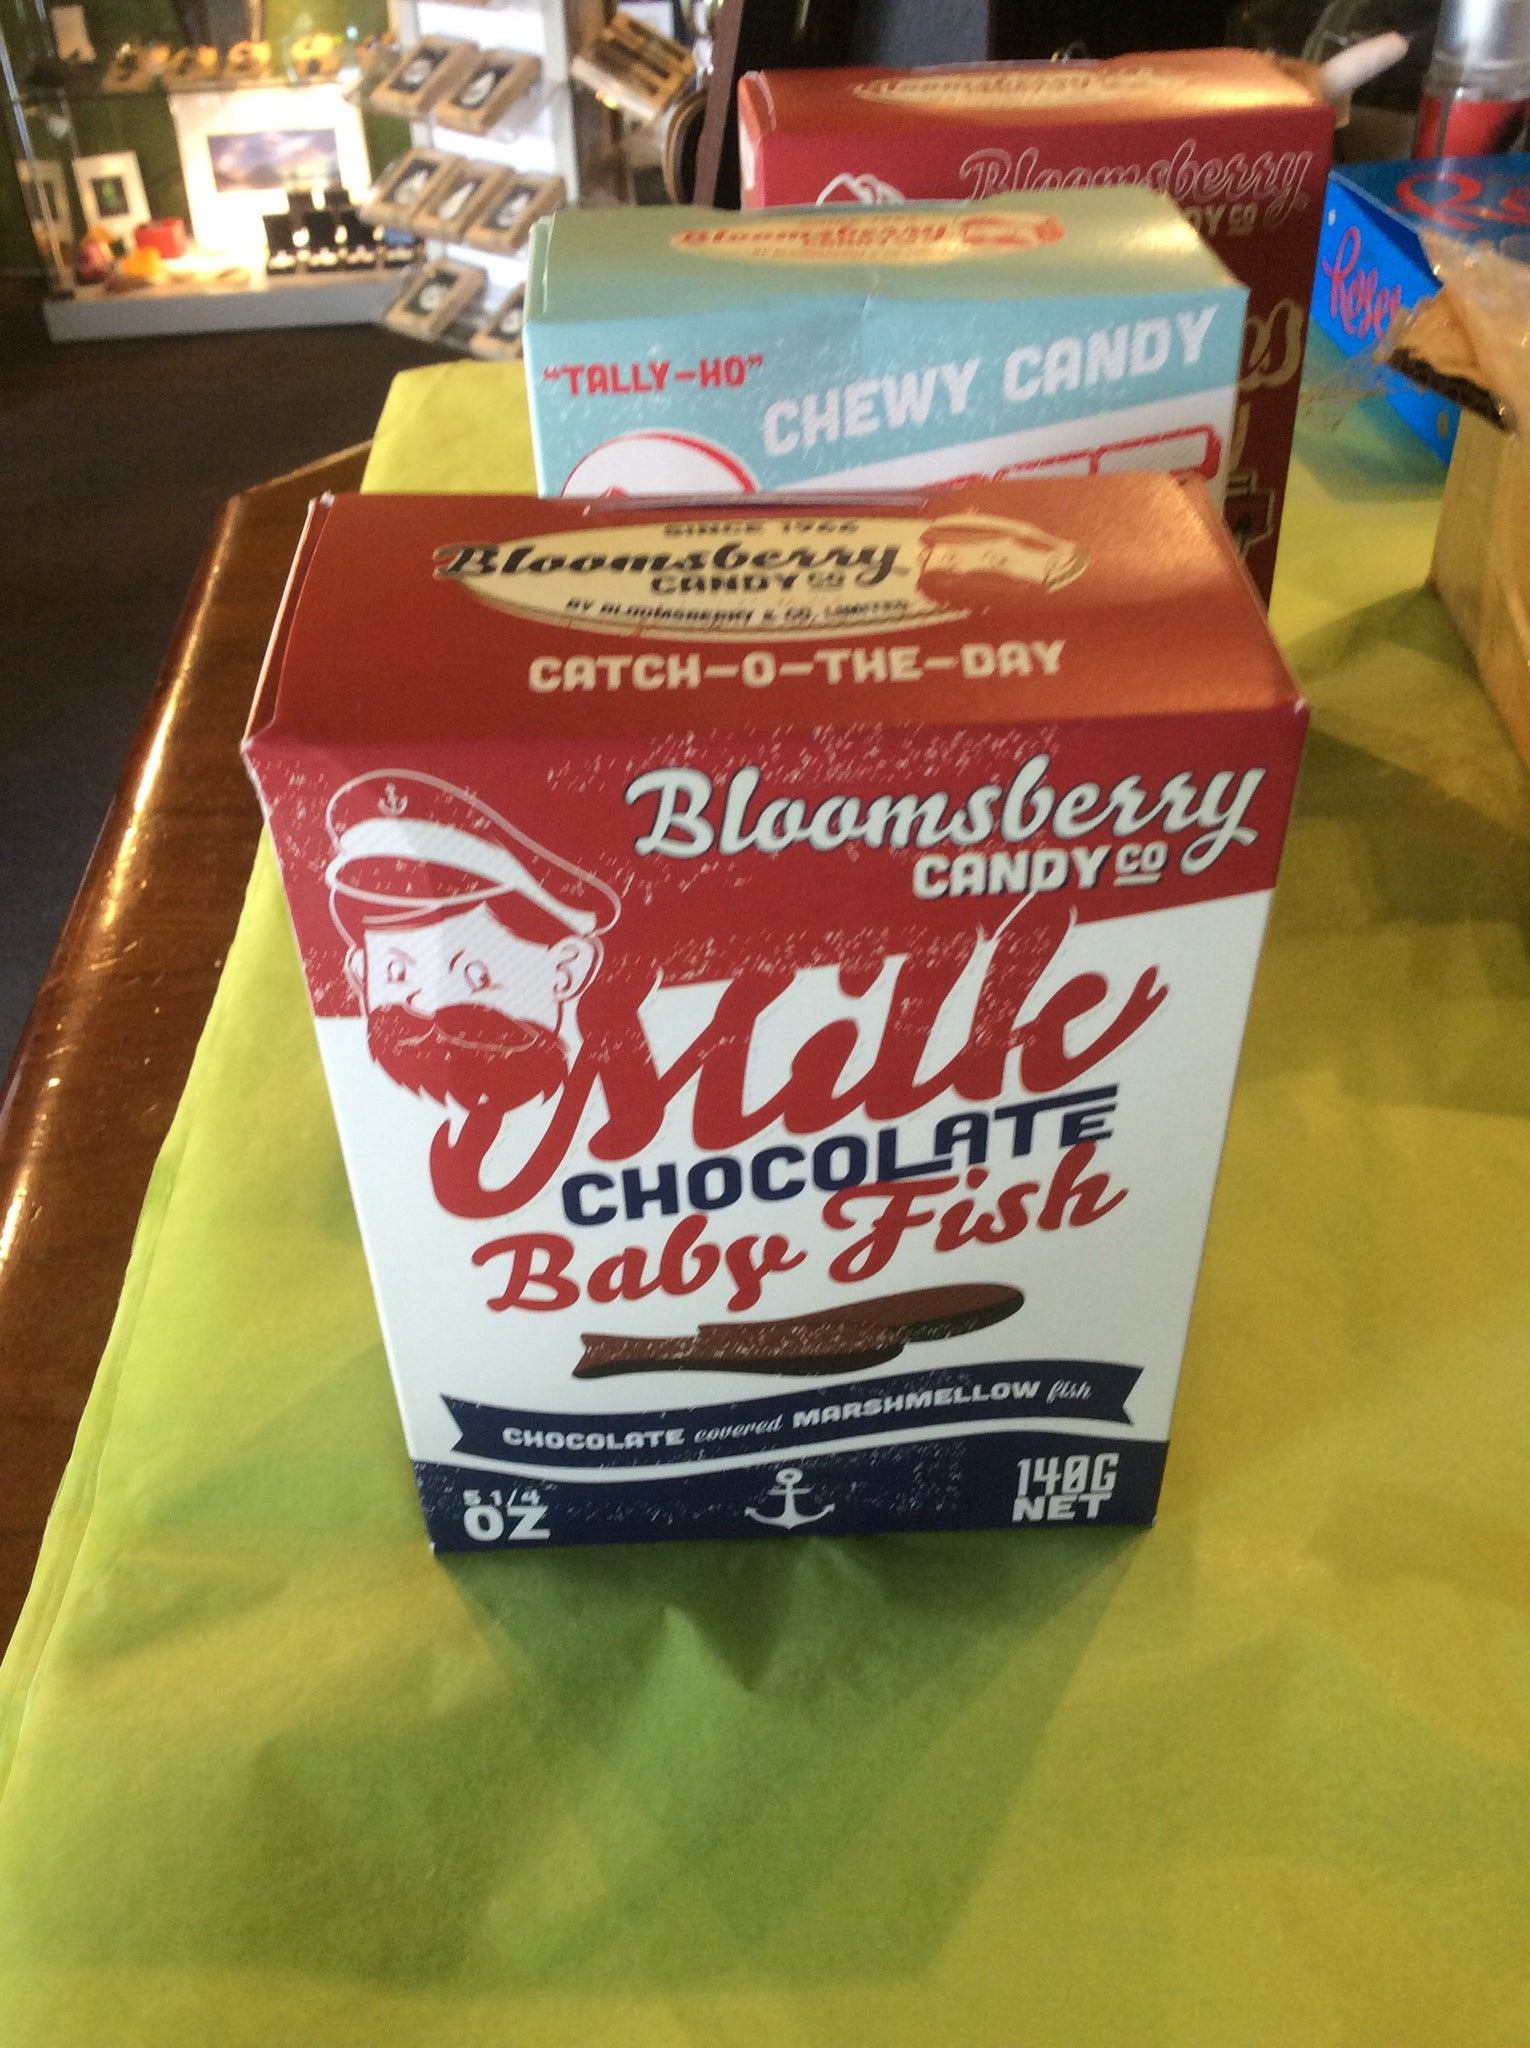 Chocolate Fish - Bloomsberry Candy Co.